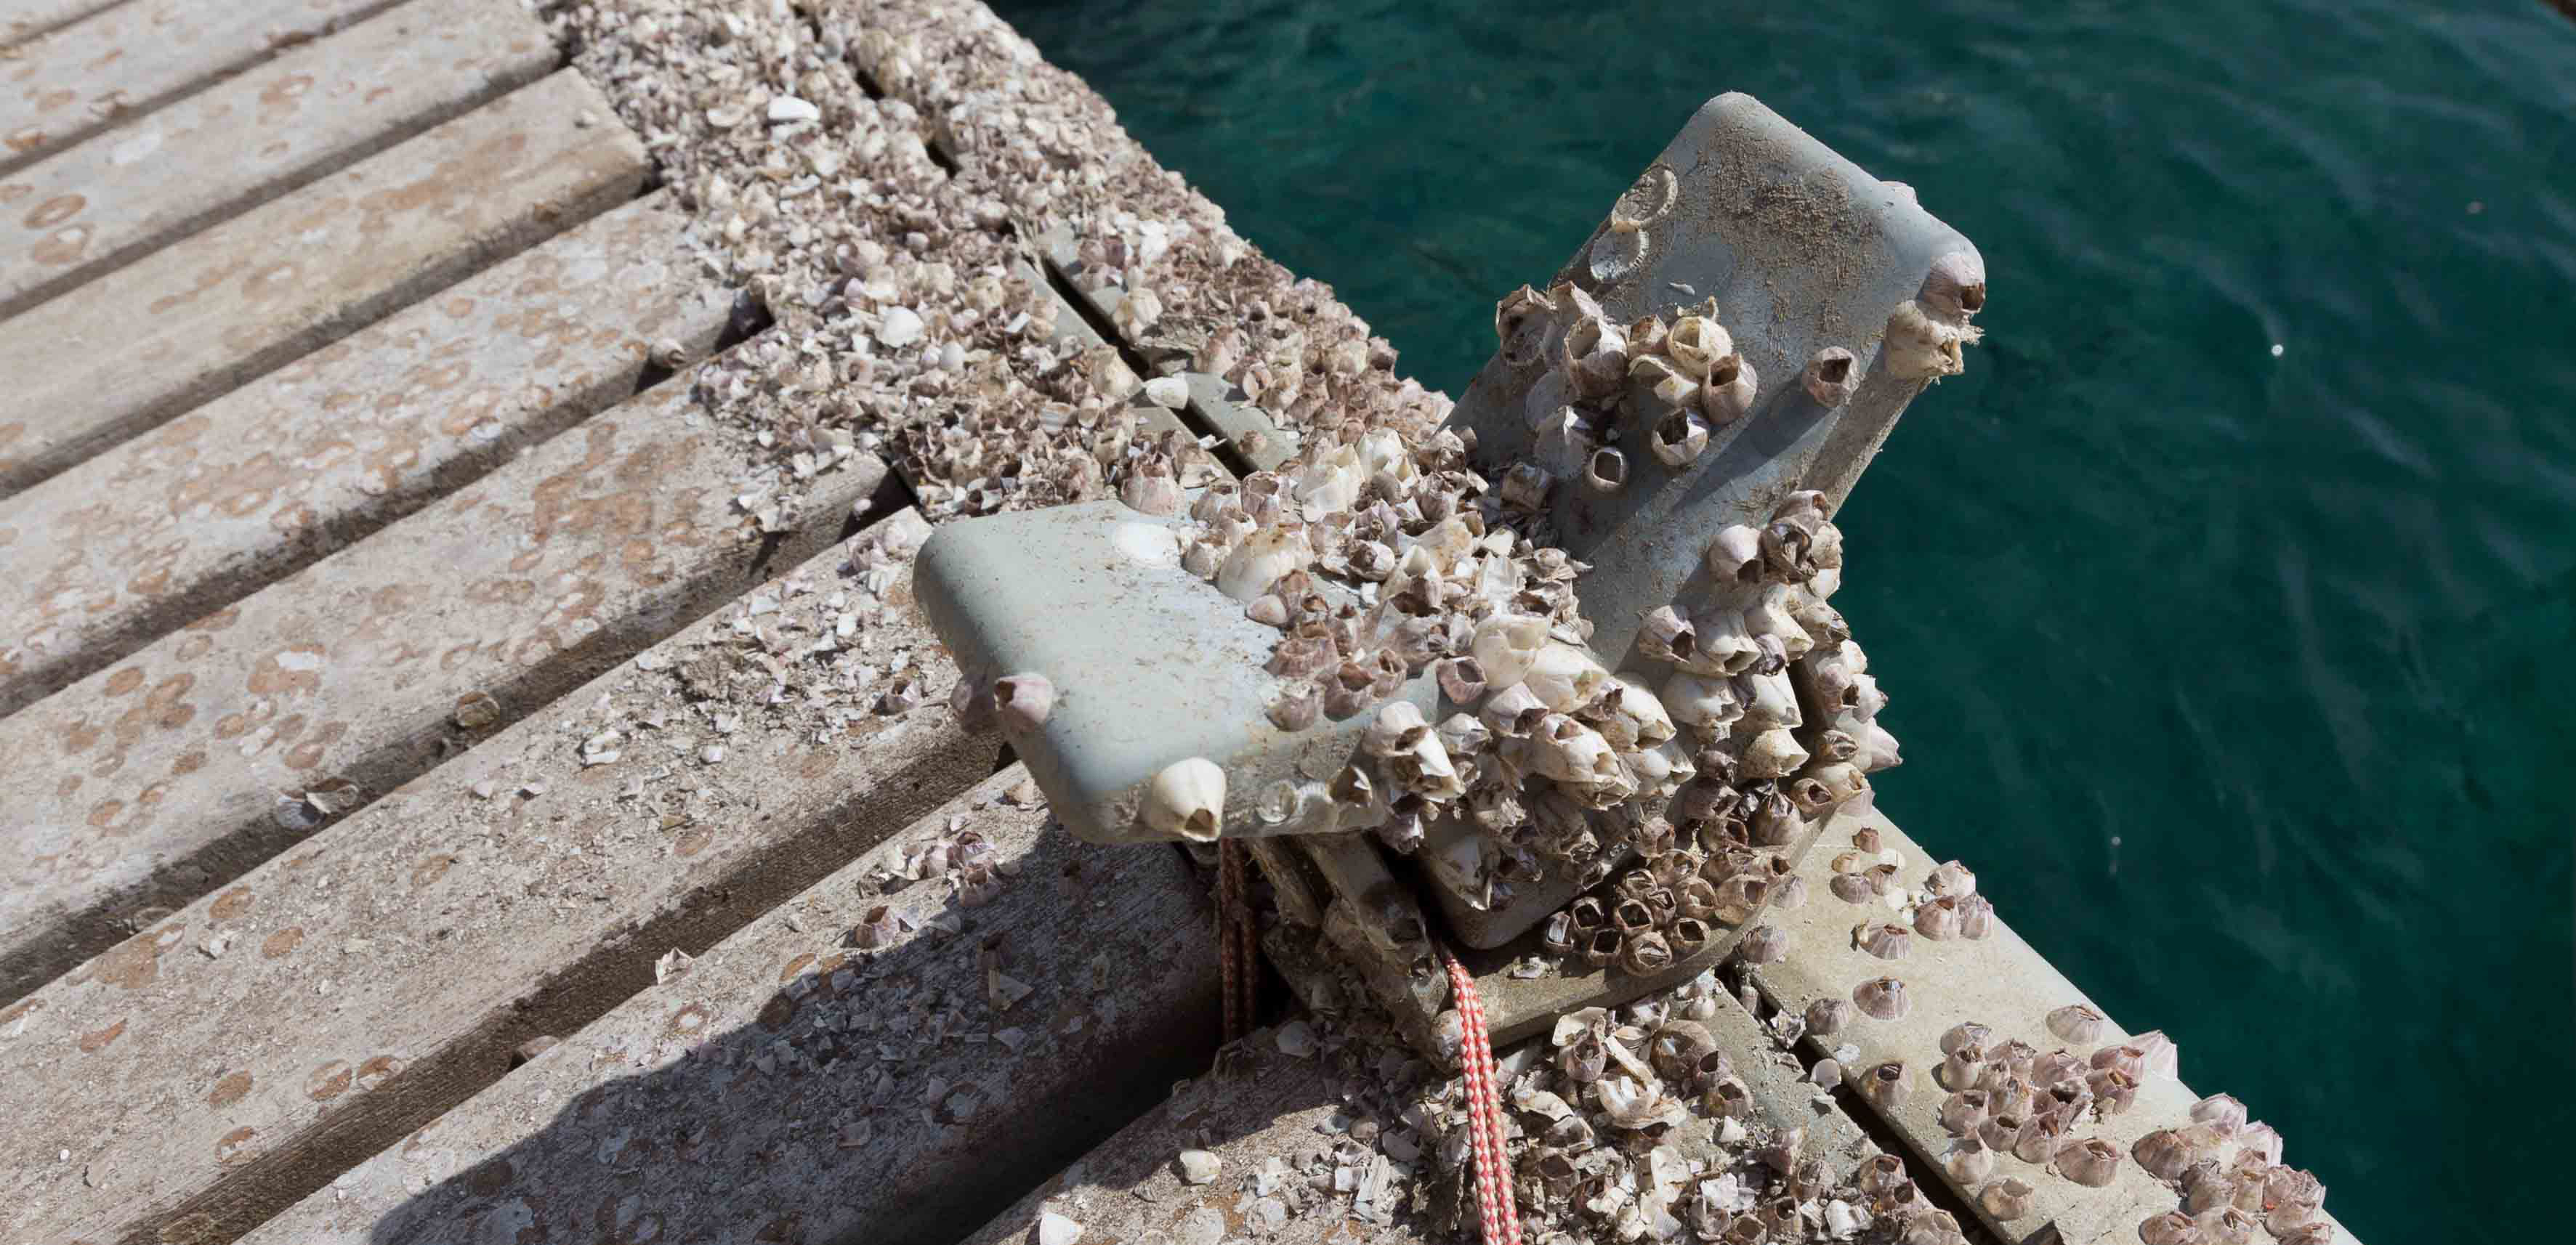 Image of abandoned (empty) Acorn barnacle shells attached to aft beam of catamaran.